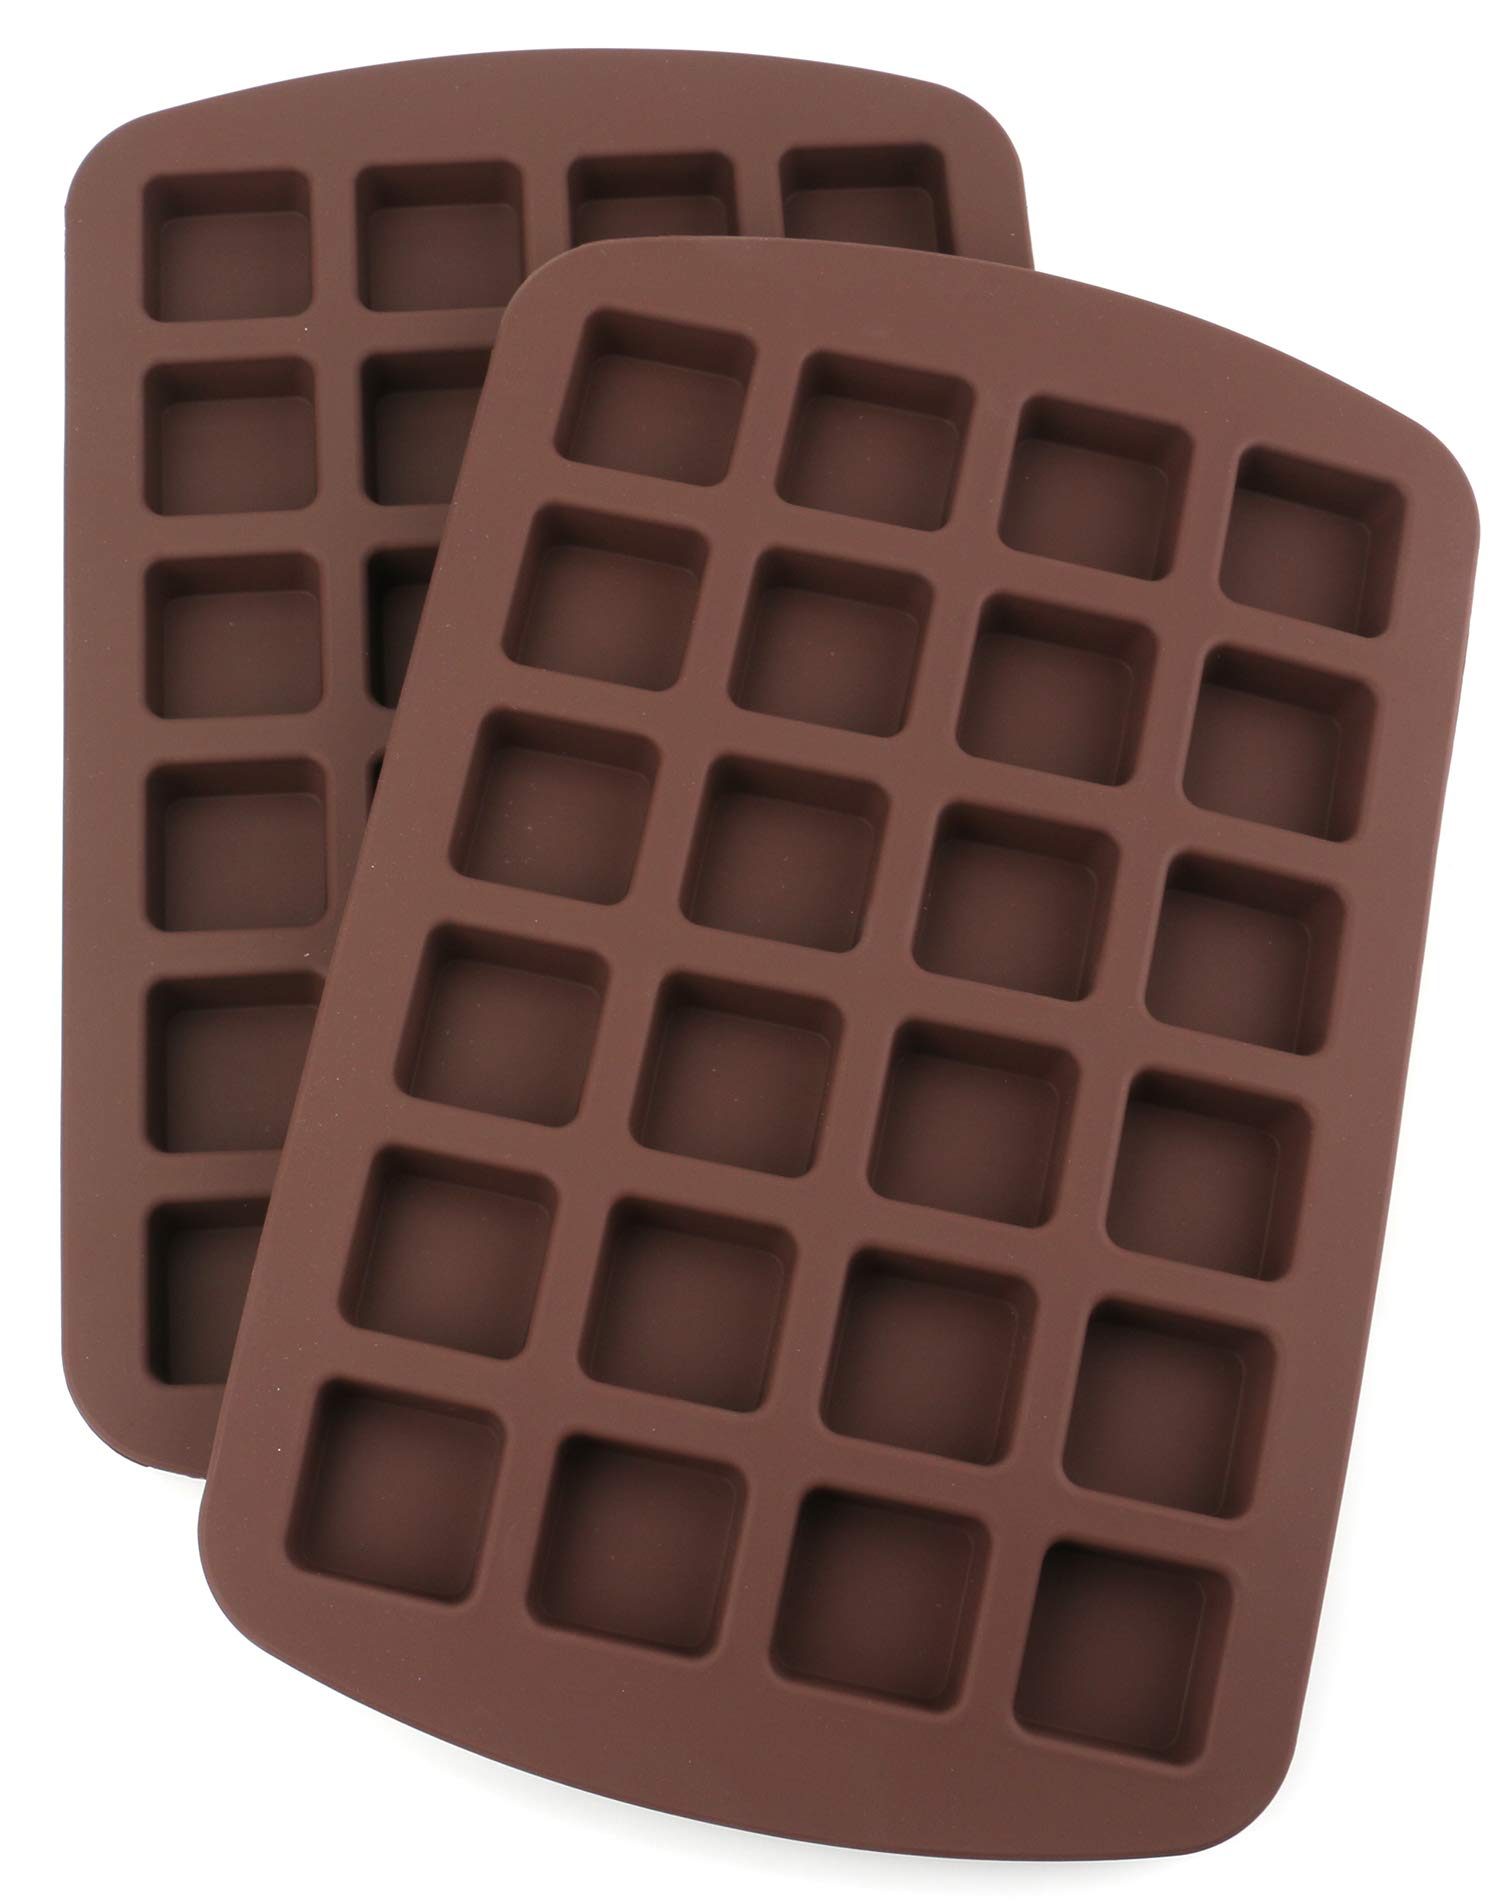 Lawei 2 Pack 24 Cavity Brownie Silicone Mold - Square Cake Mold for Candy, Chocolate Truffles, Jelly by Lawei